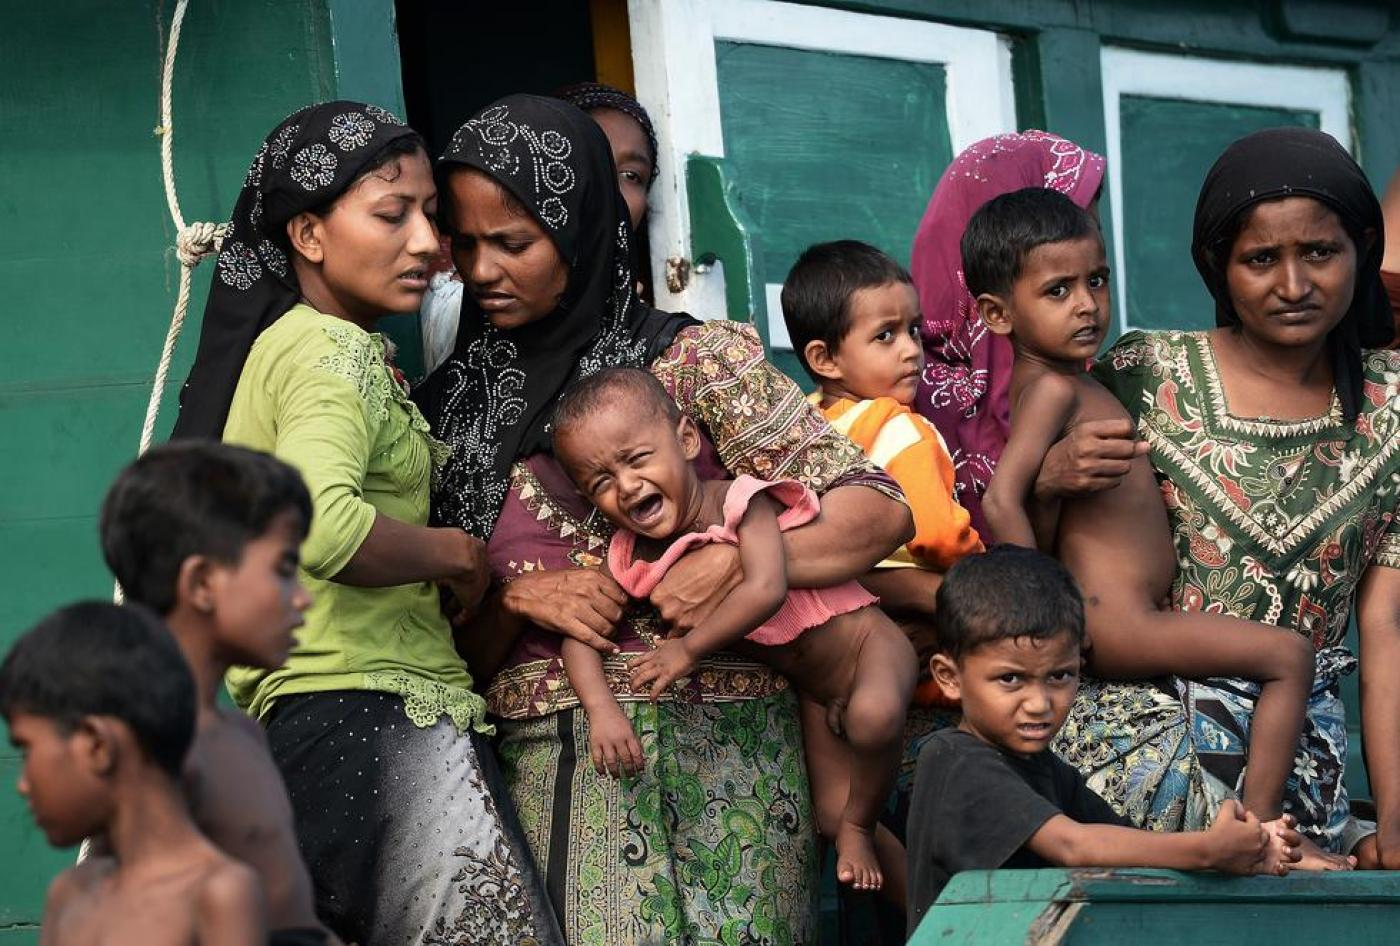 Beyond the Middle East: The Rohingya genocide | Middle East Eye